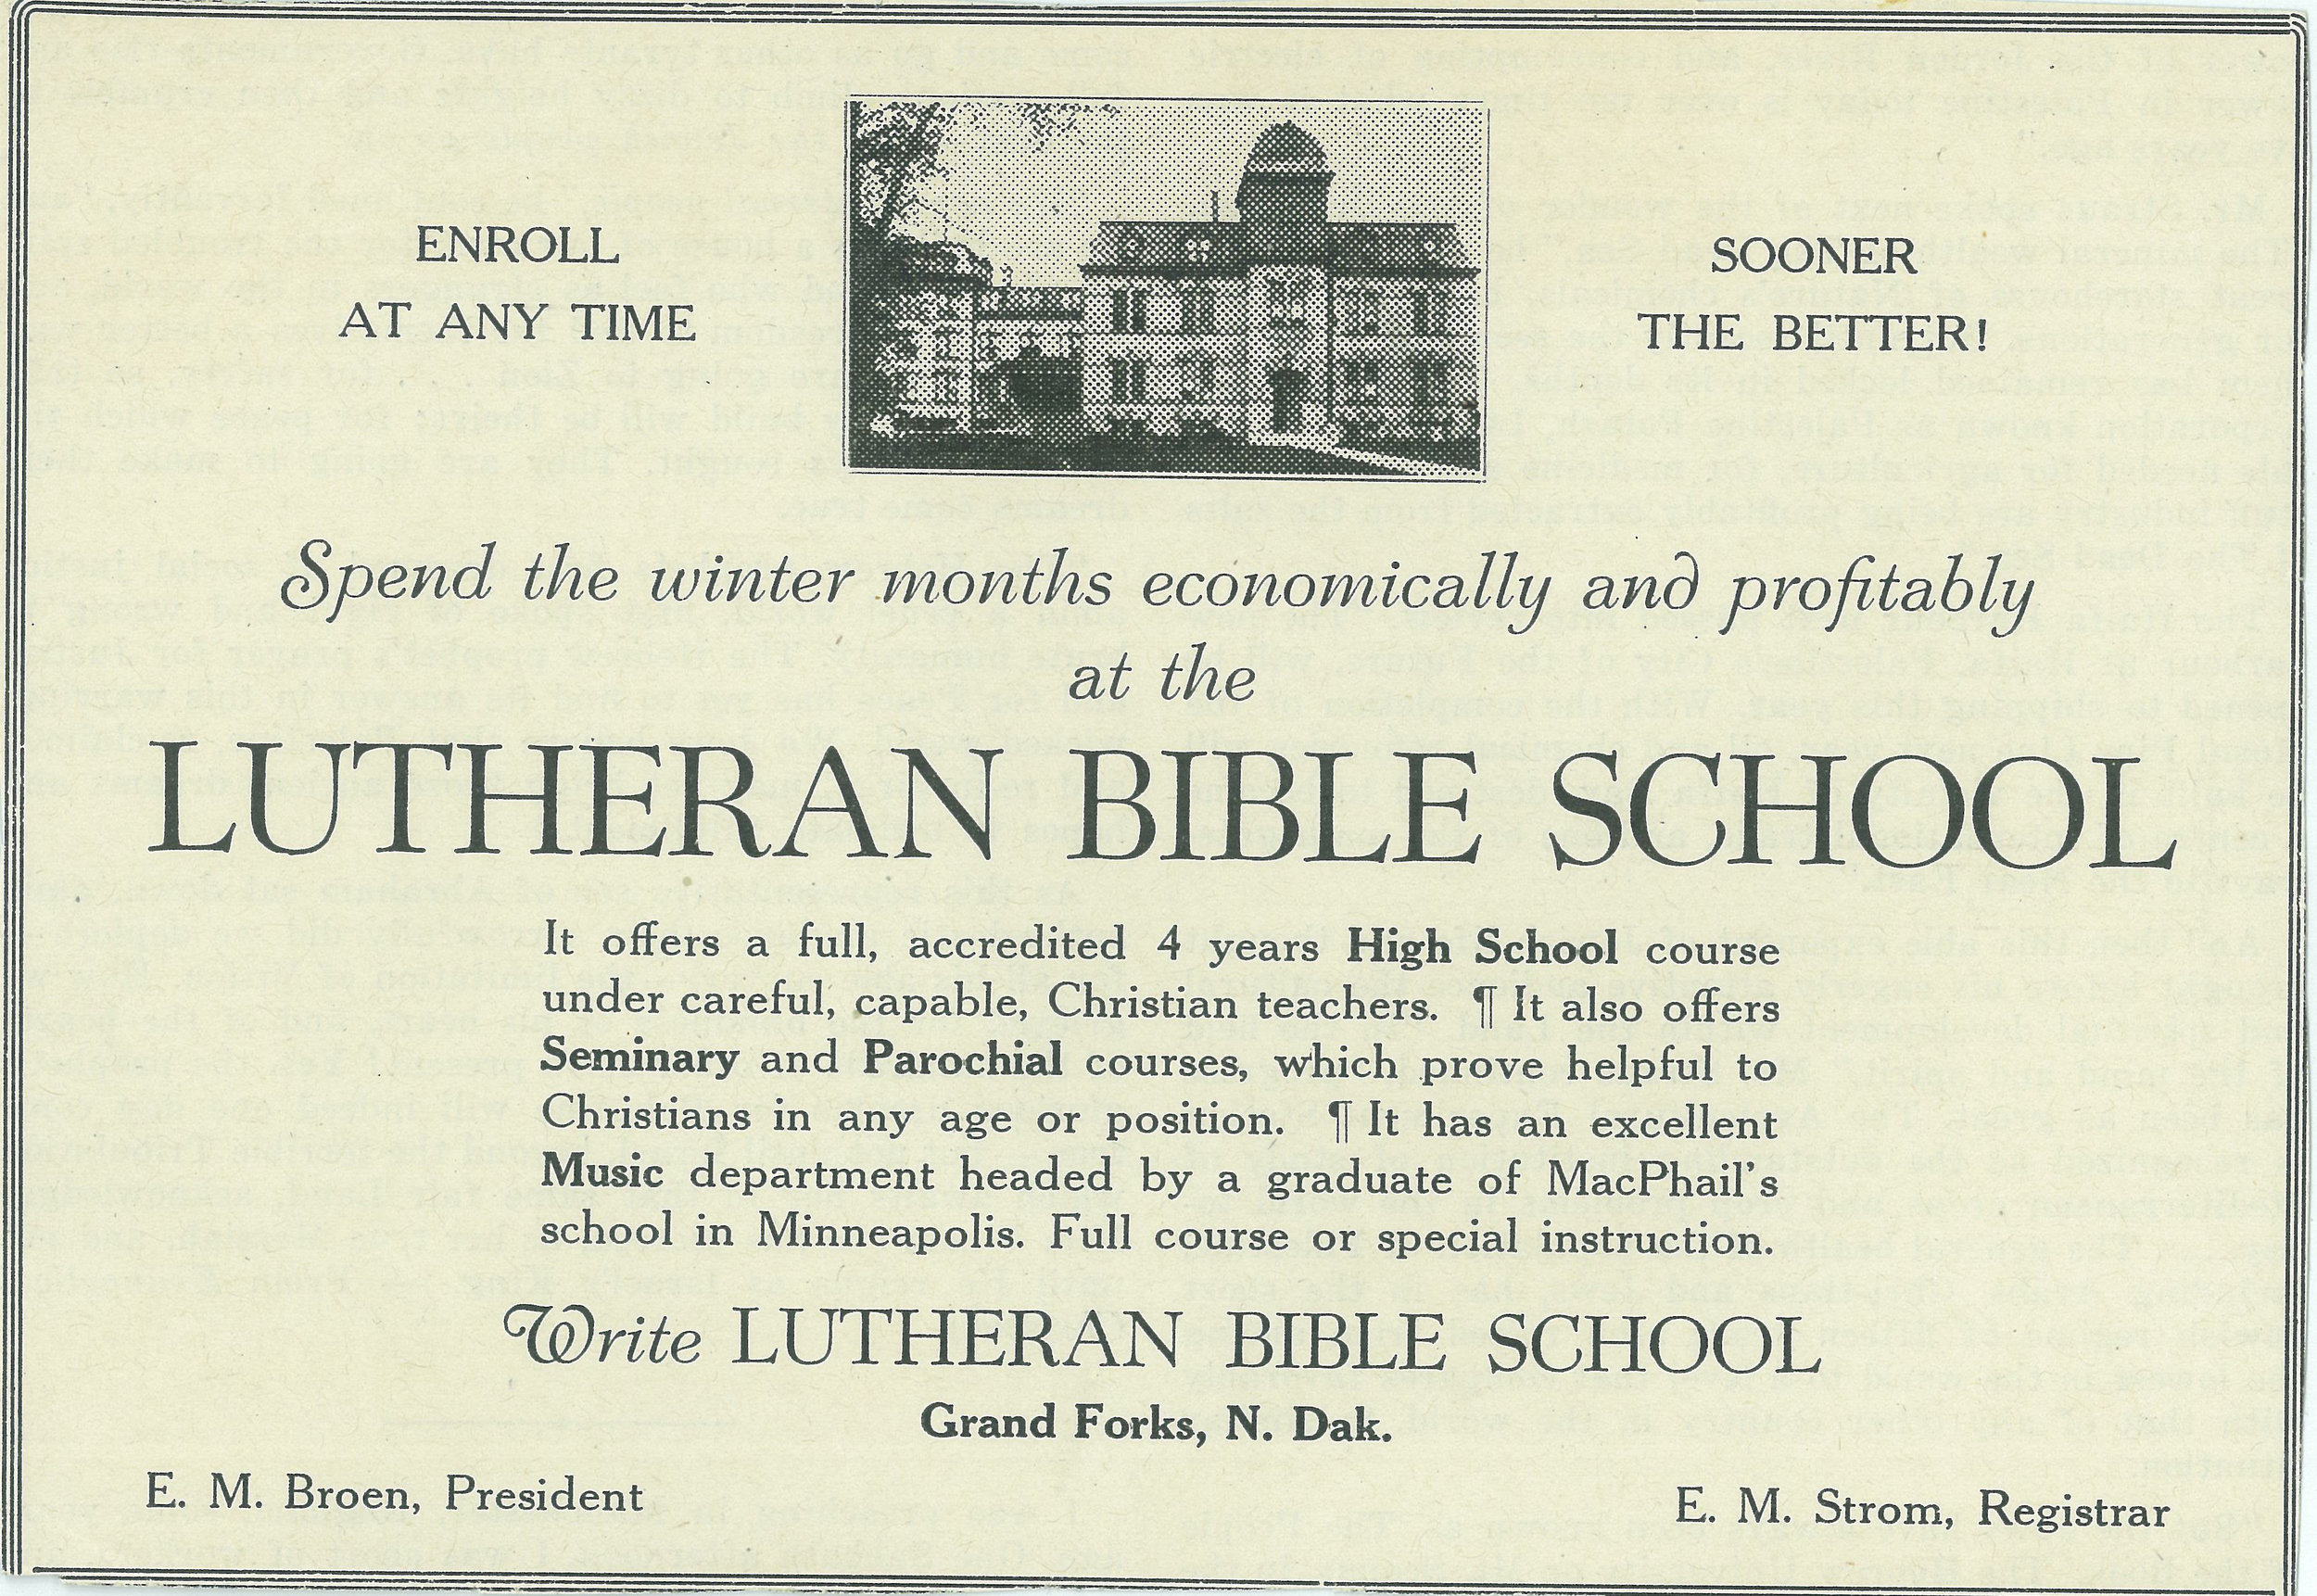 Numerous advertising campaigns promoted the Bible School throughout Minnesota and North Dakota during the difficult financial times of the '20s and '30s.